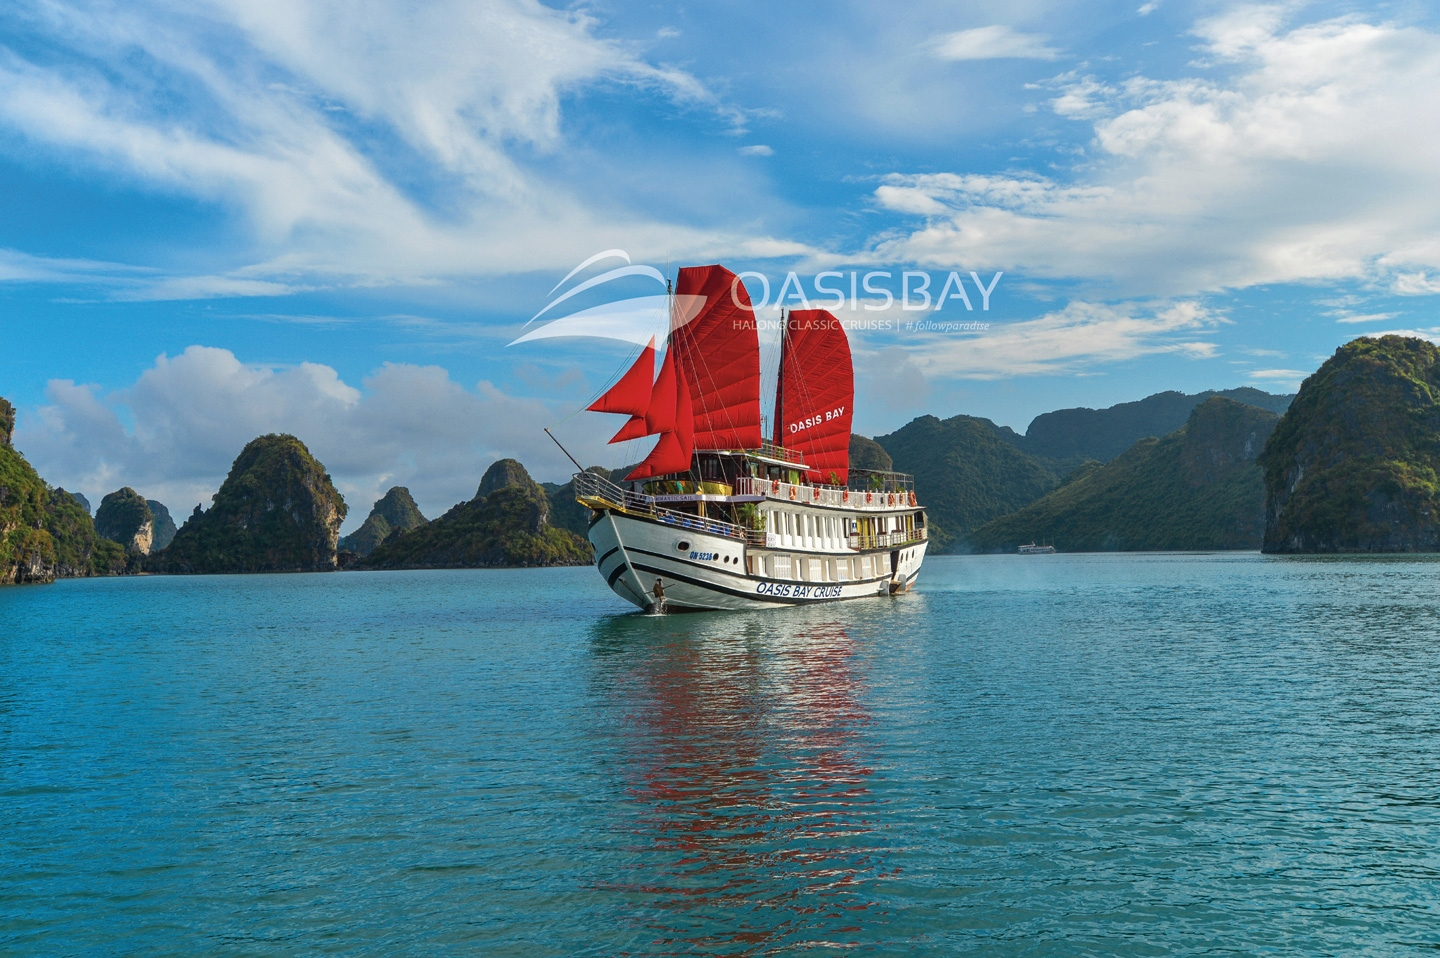 Halong Oasis Bay Cruise